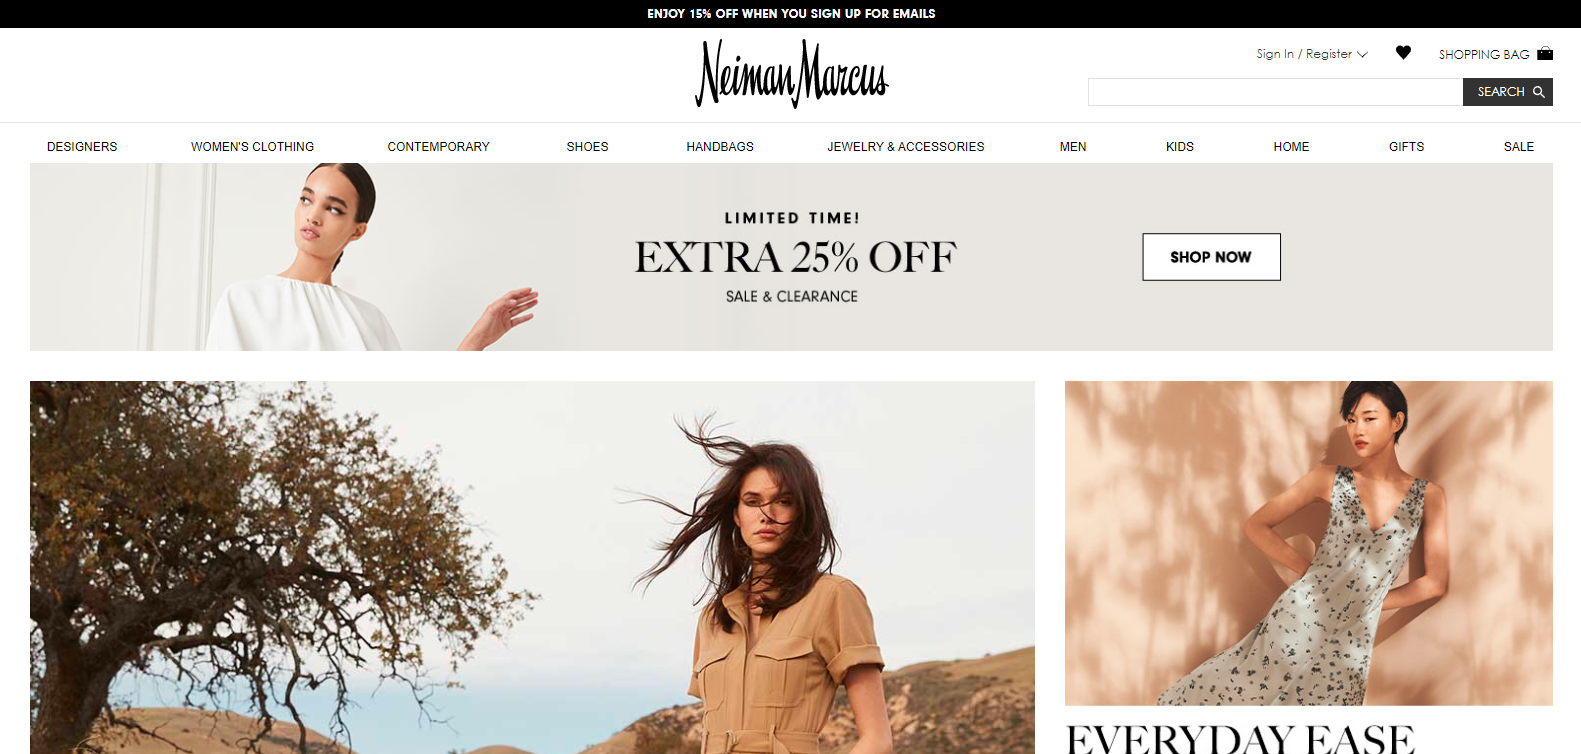 Neiman Marcus The Bankruptcy And Learning Experience For Digital Transformation Image 6